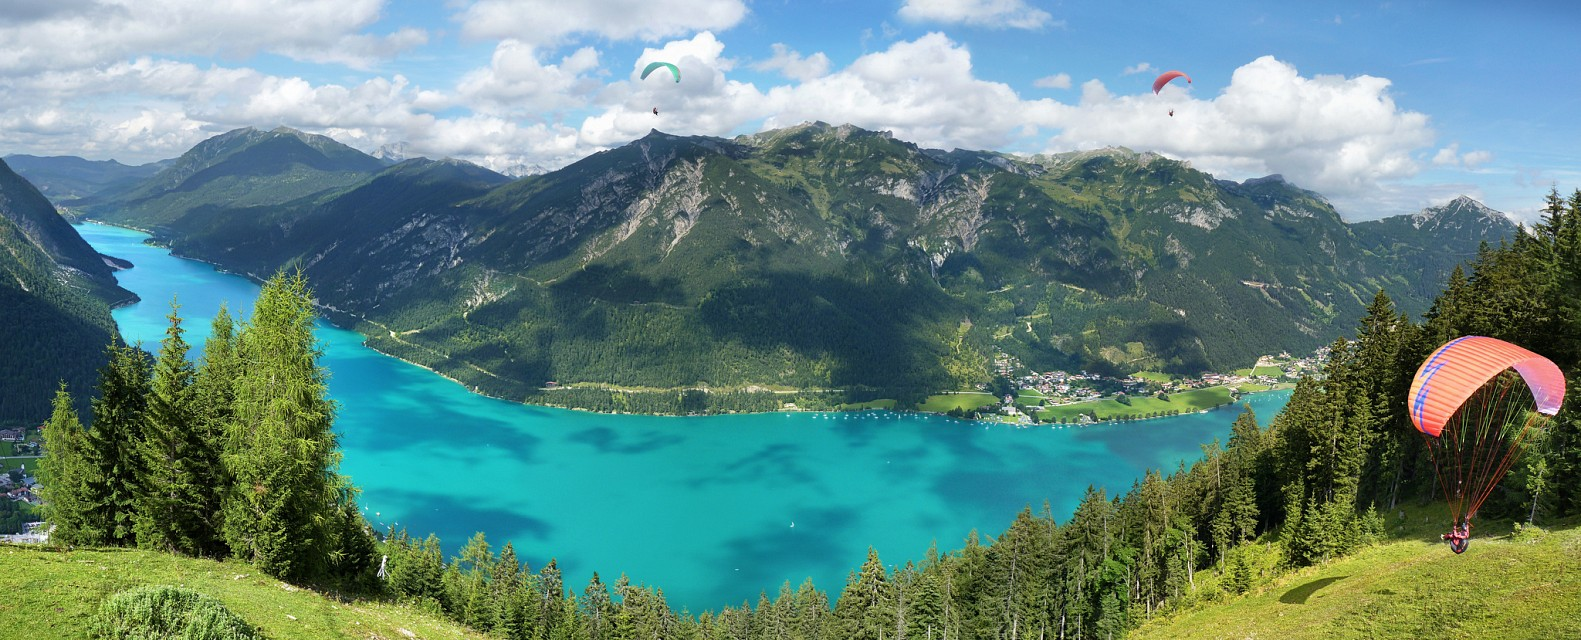 Paraglider lift off at the Achensee - Achen Lake